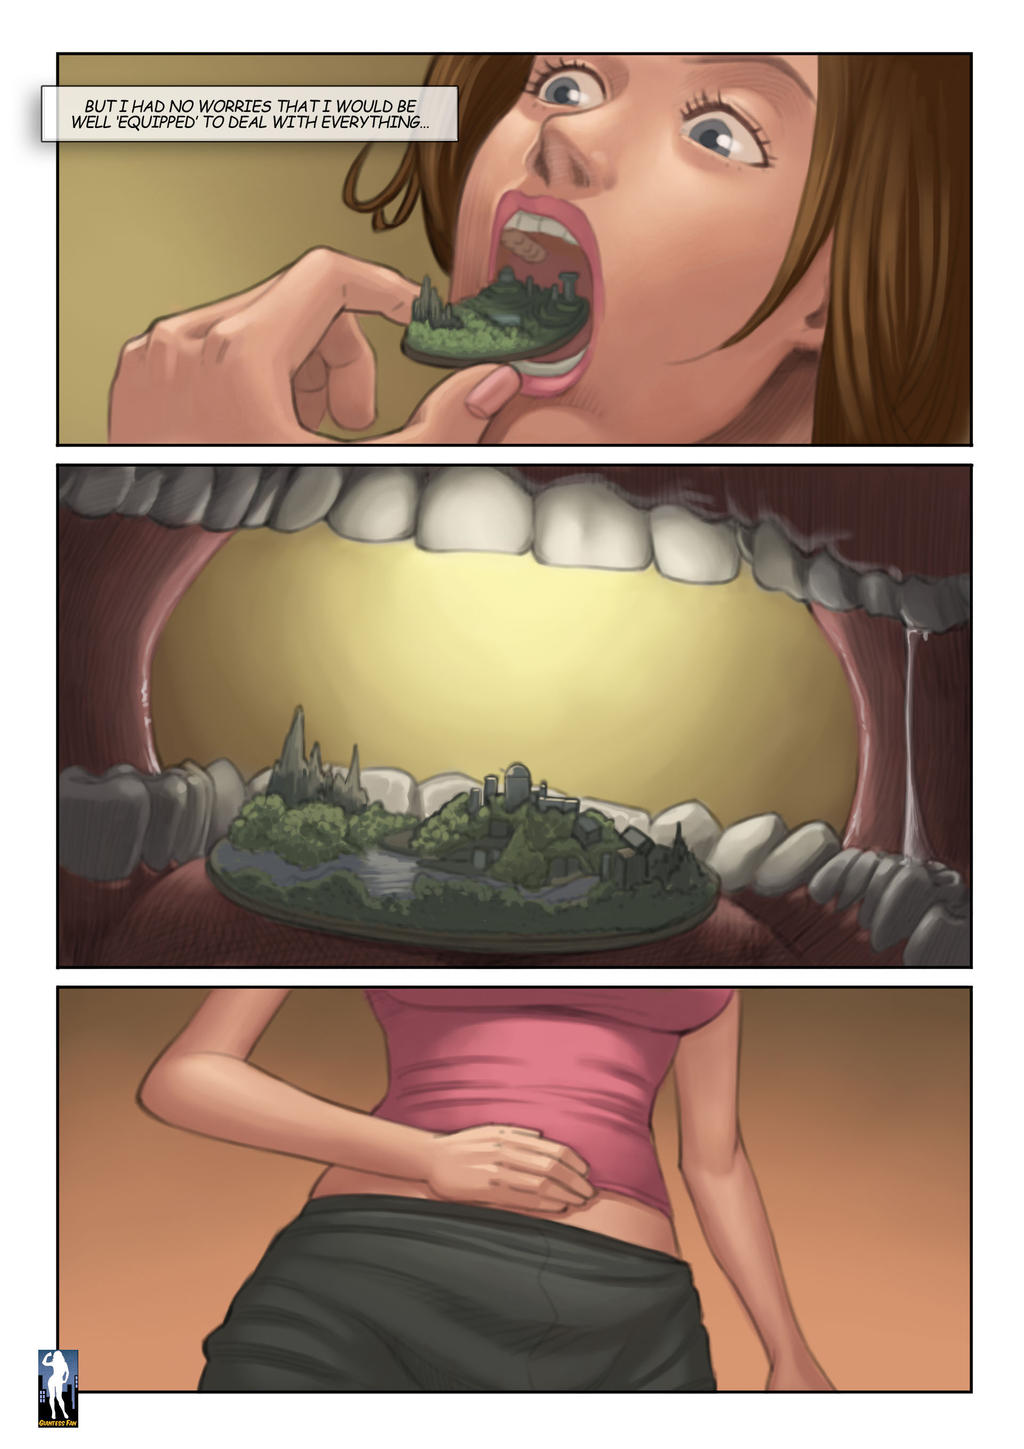 Giantess vore pictures pron clips